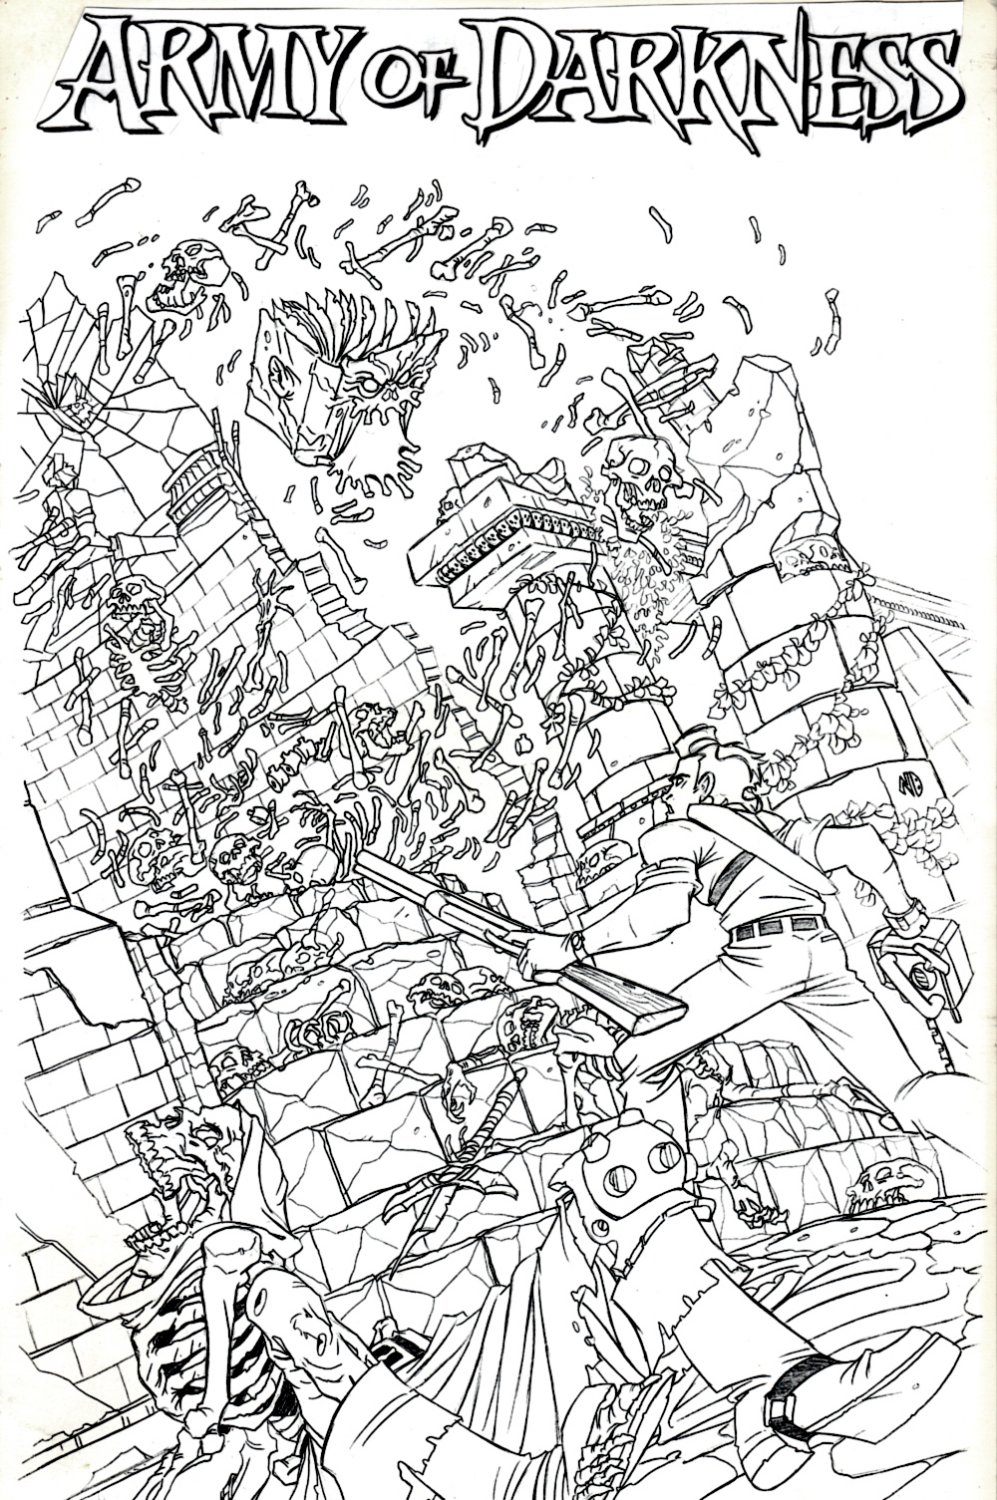 Army of Darkness #4 Unpublished Cover (ASH, ZOMBIES, SKELETONS, THE NECRONOMICON!)